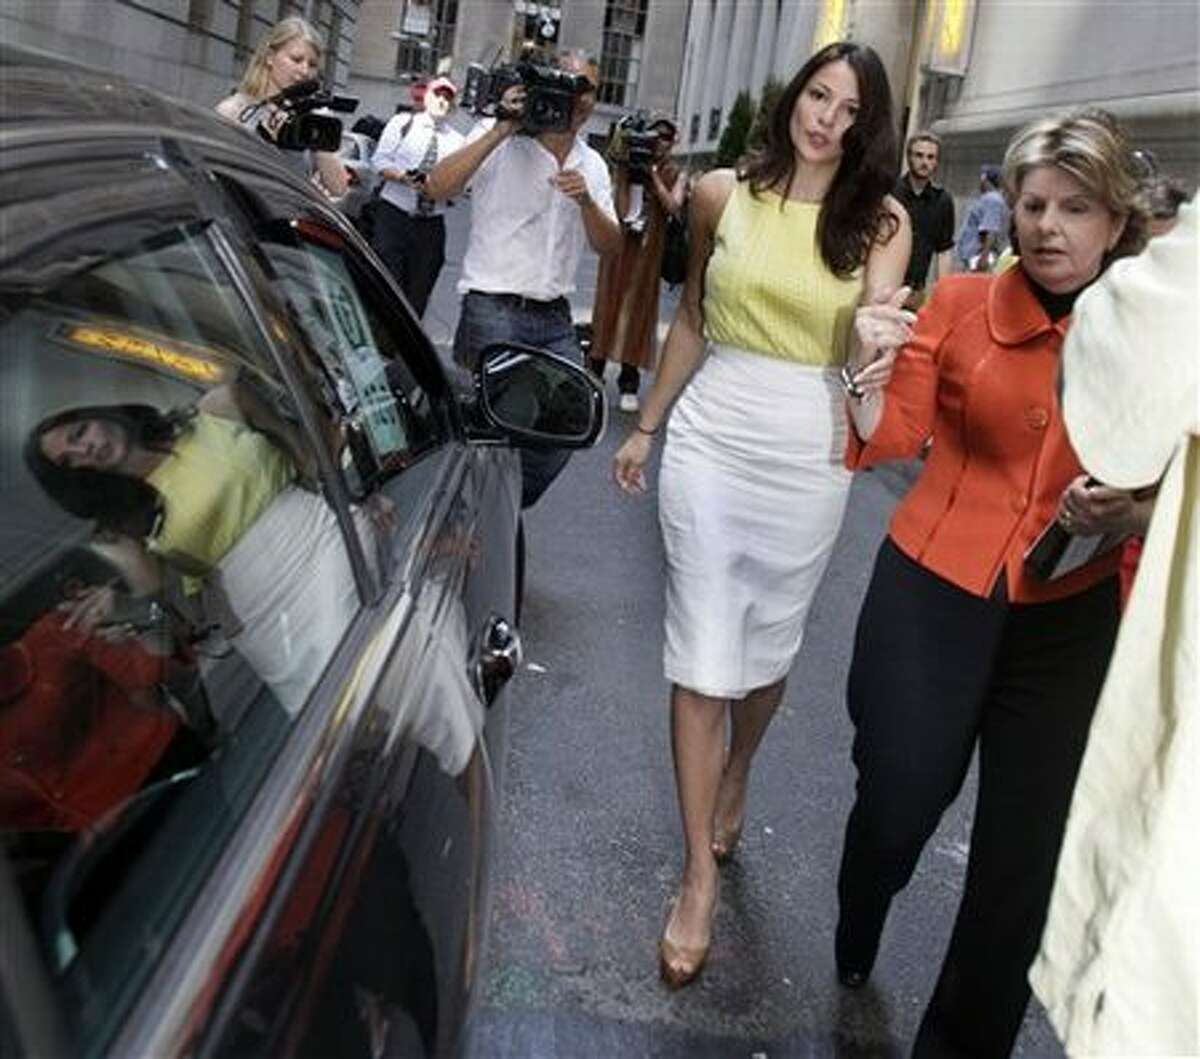 Debrahlee Lorenzana, center, who says she was fired from her banking job after complaining that male colleagues called her curvaceous figure distracting, and her attorney Gloria Allred, right, walk to a waiting car after a curbside news conference in New York's Financial District Monday. (AP Photo/Richard Drew)